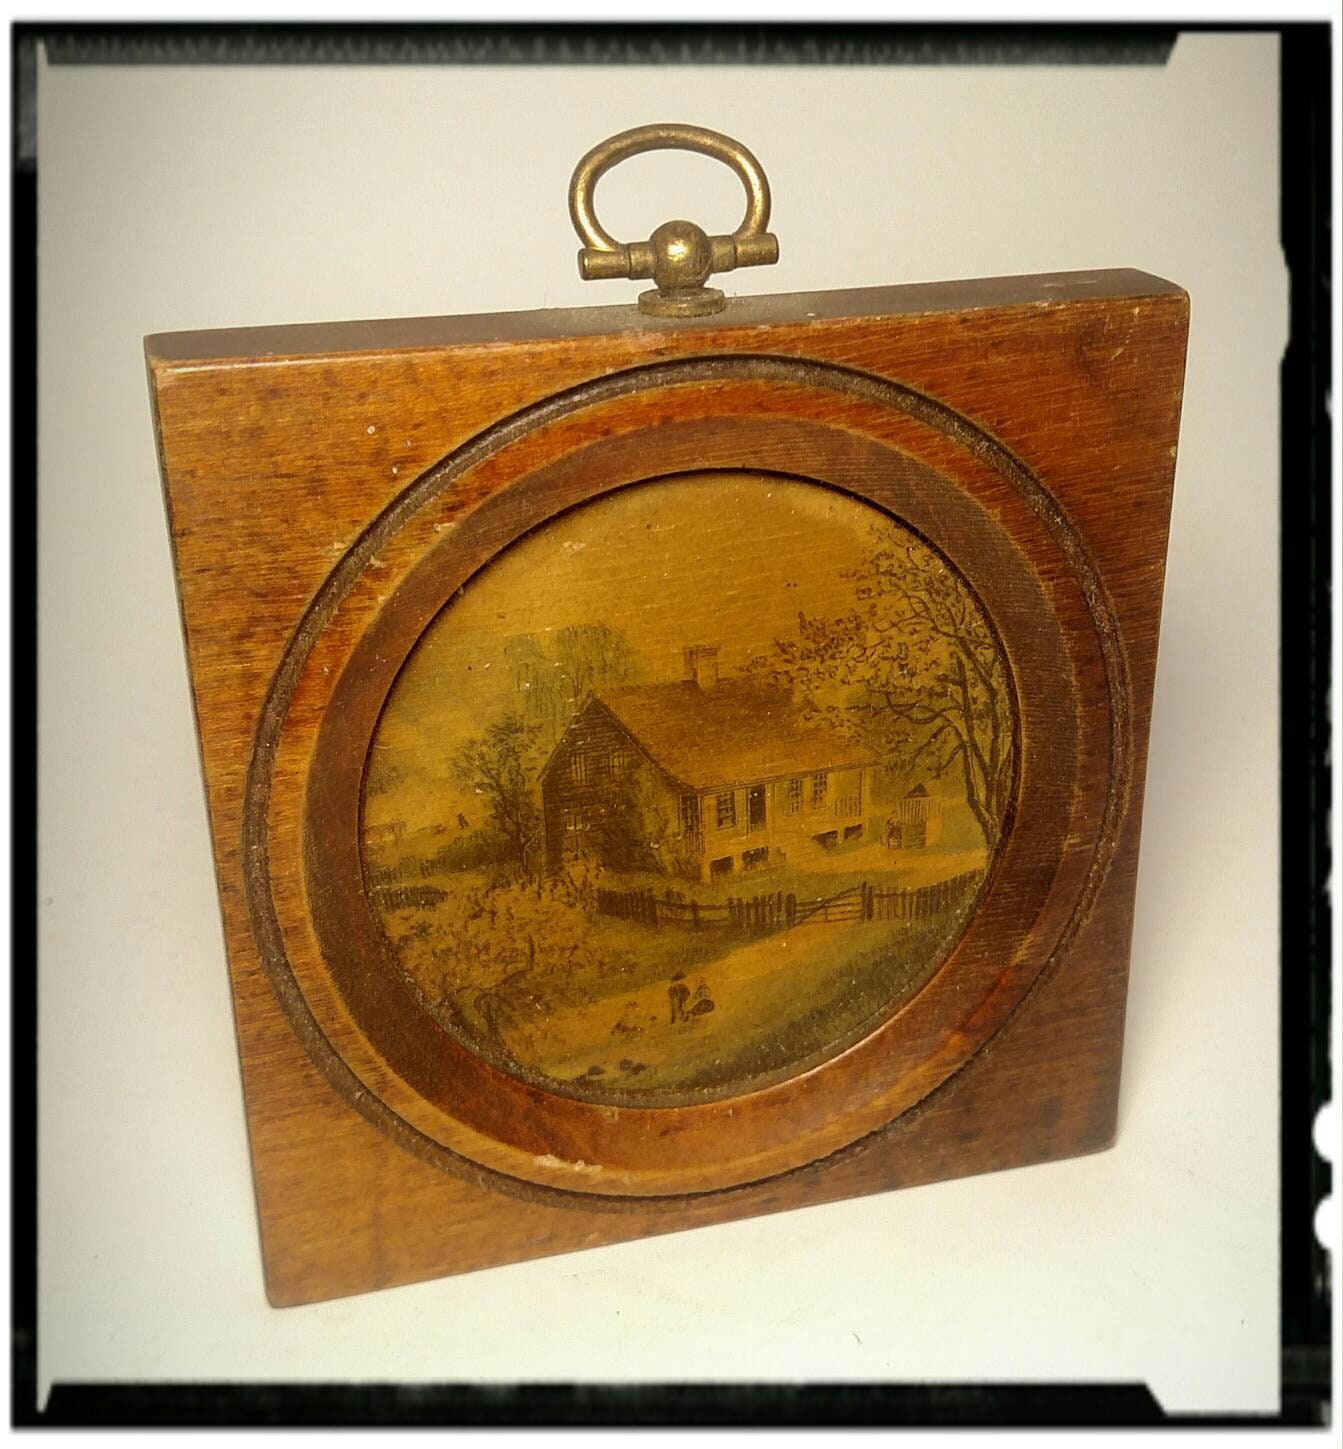 Vintage Woodcroftery Wall Decor Wall Hanging Southern Decor Farmhouse Decor Vintage Kitchen Decor Best Gift Idea F1939